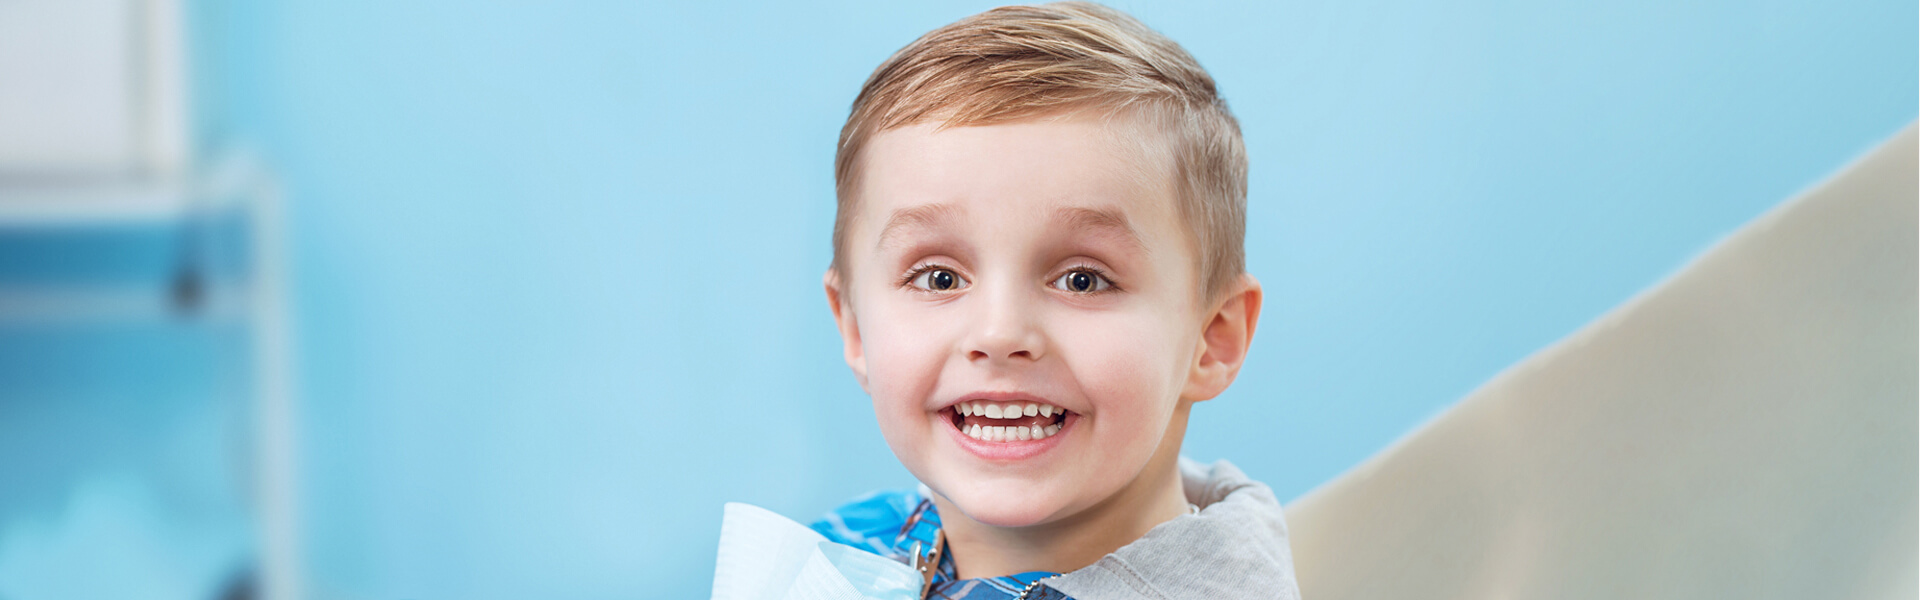 Children's Dentistry Specializing in Your Child's Teeth